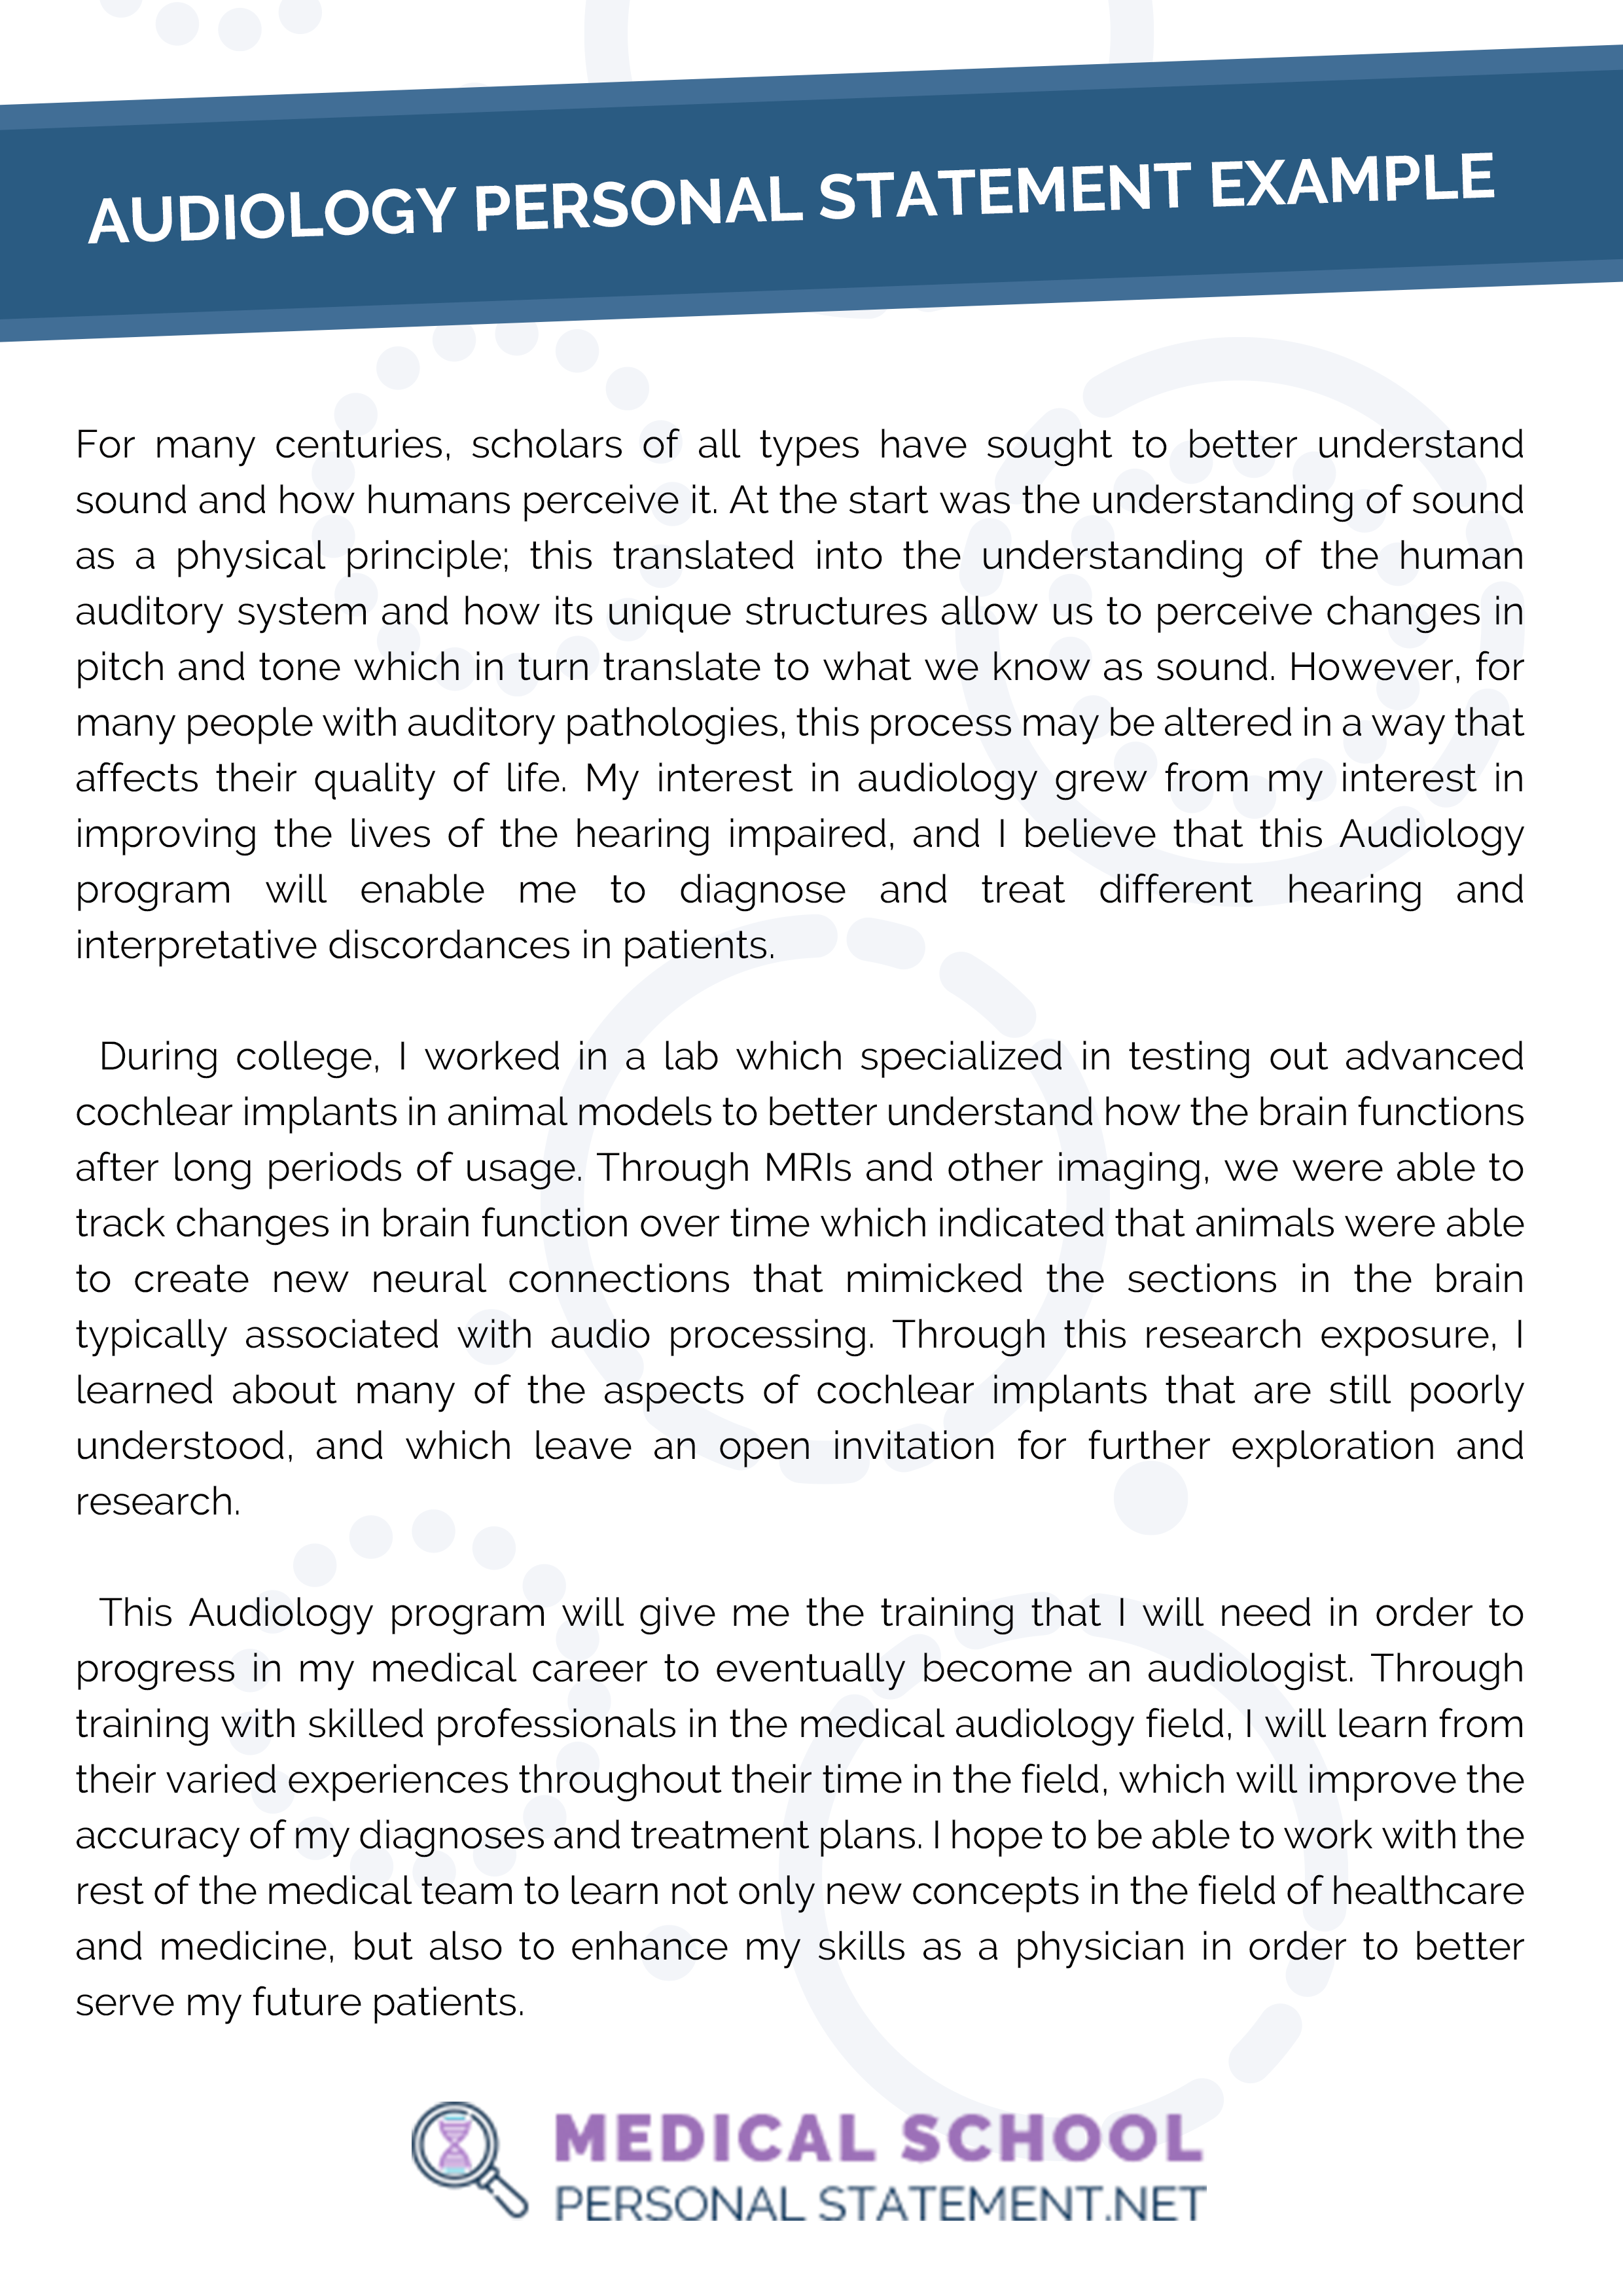 Audiology Personal Statement Example Personal Statement Examples Personal Statement Audiology [ 3508 x 2480 Pixel ]